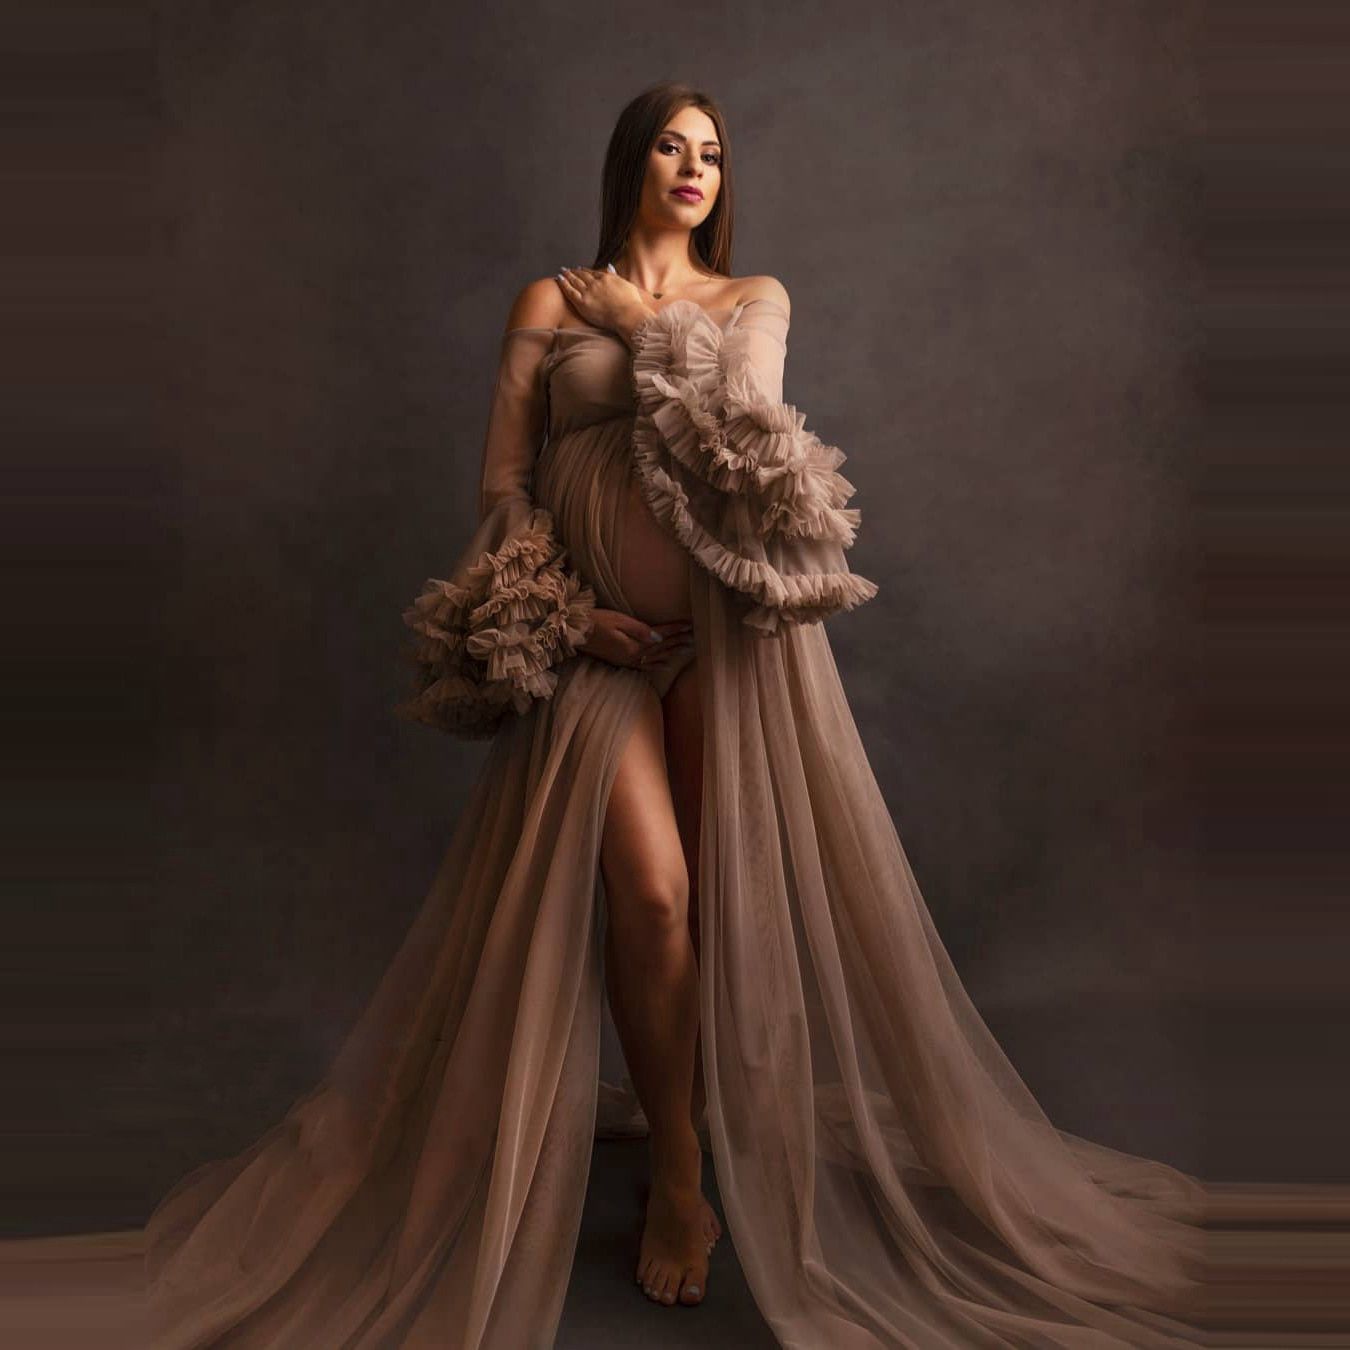 Sexy Khaki Sheer Maternity Dresses for Photography See Thru Off shoulder Women Maternity Robes Shoot